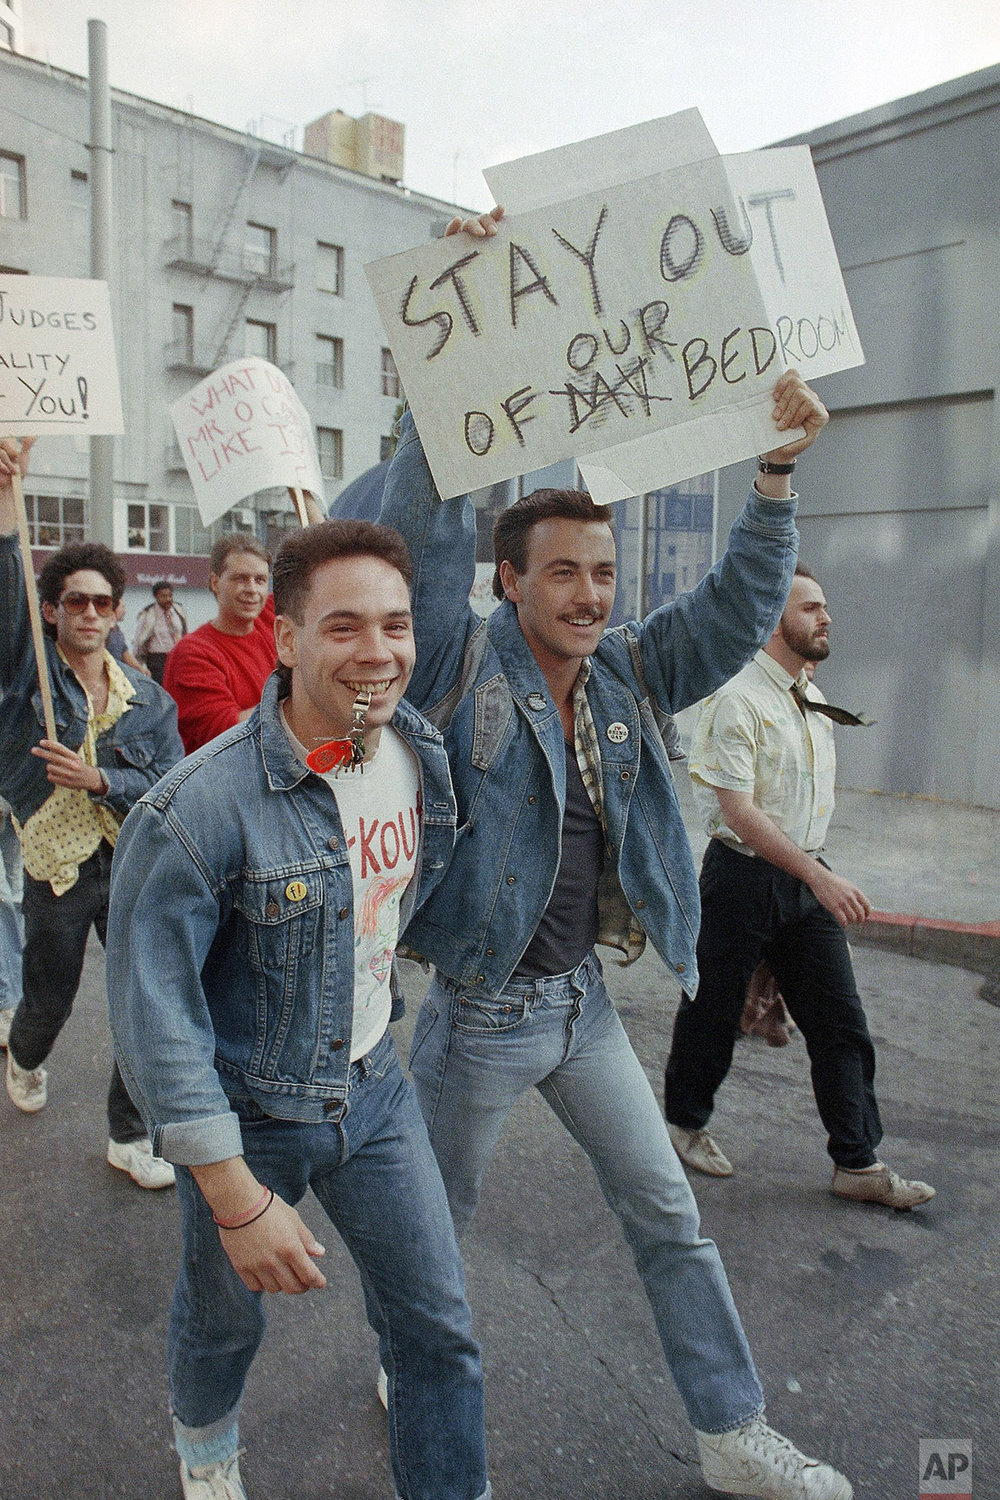 "Members of the San Francisco Gay community march down Market Street protesting Supreme Court Justice Sandra Day O'Conner's visit to San Francisco, Thursday, July 17, 1986, San Francisco, Calif. Justice O'Connor is scheduled to speak to the Bay Area Council on ""The Workings of the Court."" The protest is in response to the Supreme Court's recent ruling on sodomy. (AP Photo/Paul Sakuma)"